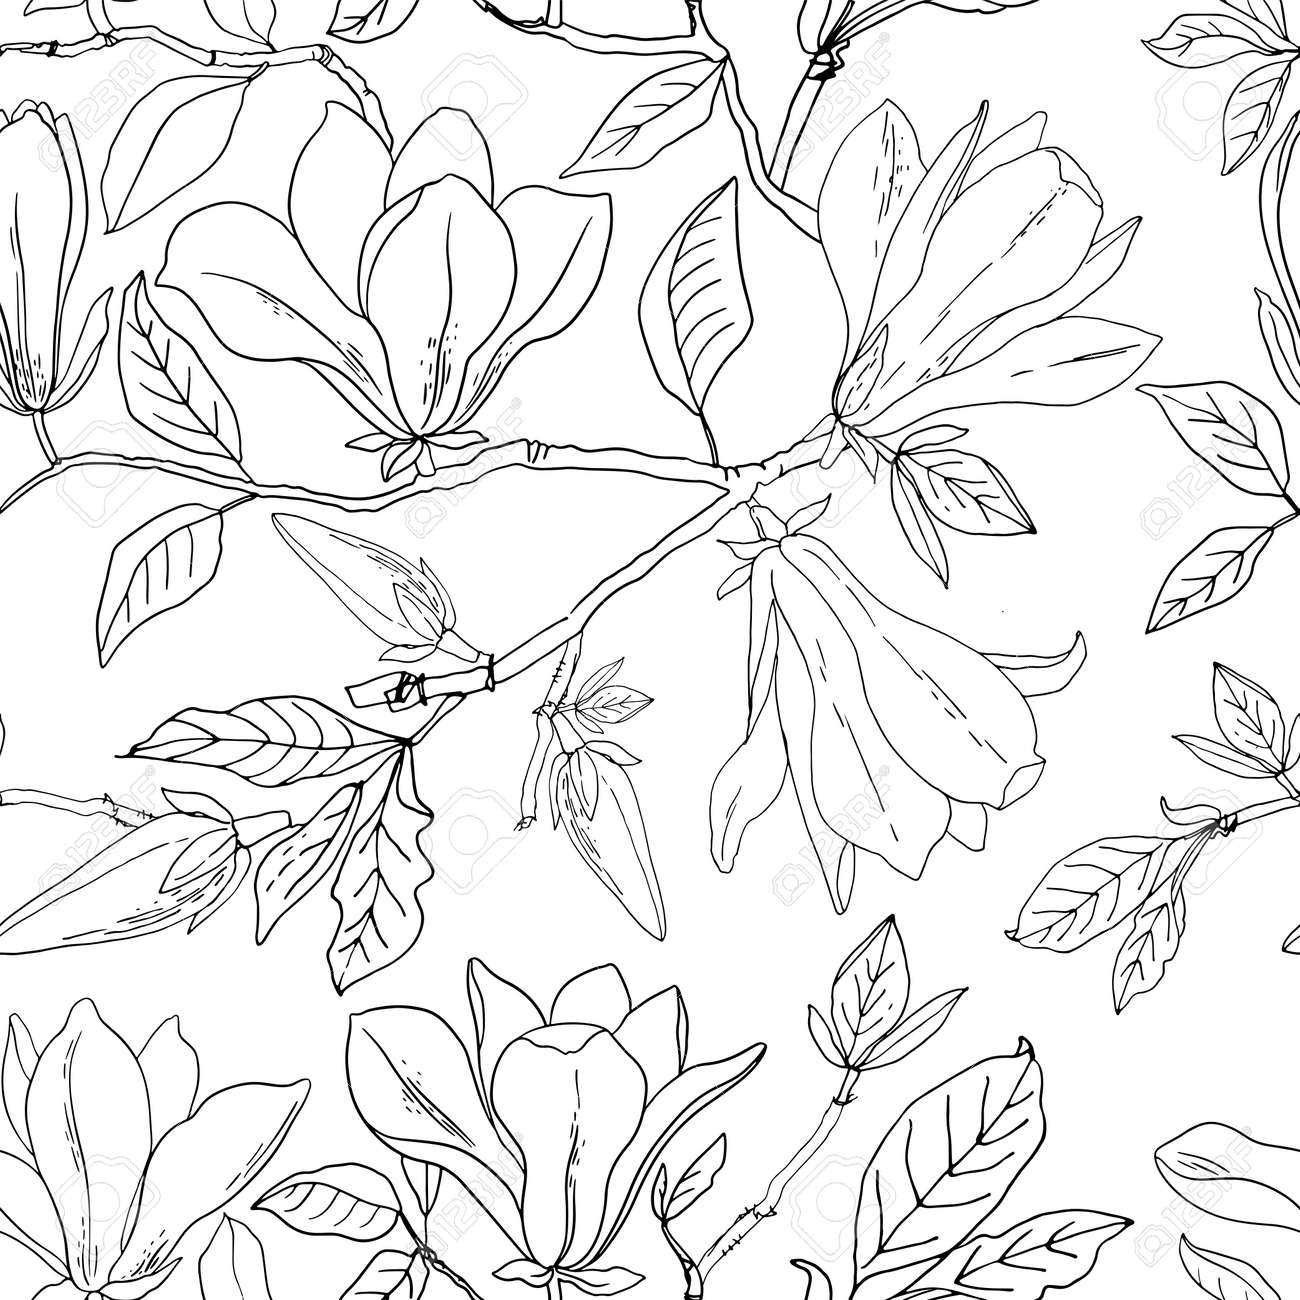 Flower pattern Magnolia. Vector sketch of flowers by line on a white background. - 169914263